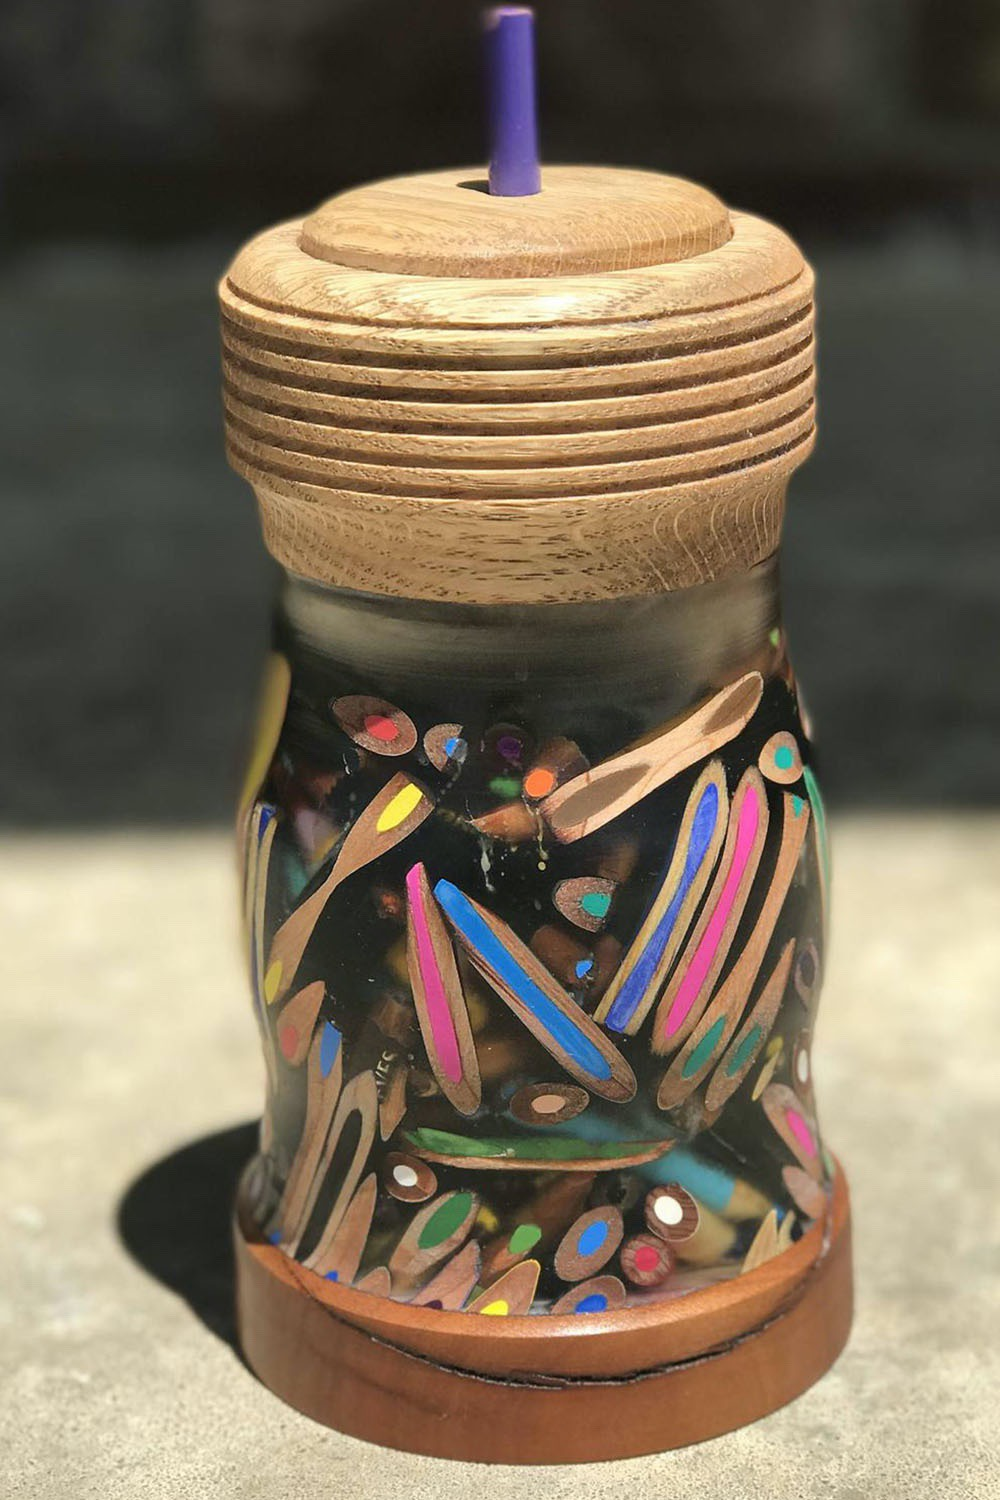 Learn how to make a colored DIY pencil container with Matt Myers #ColoredPencils #Crafting #DIY